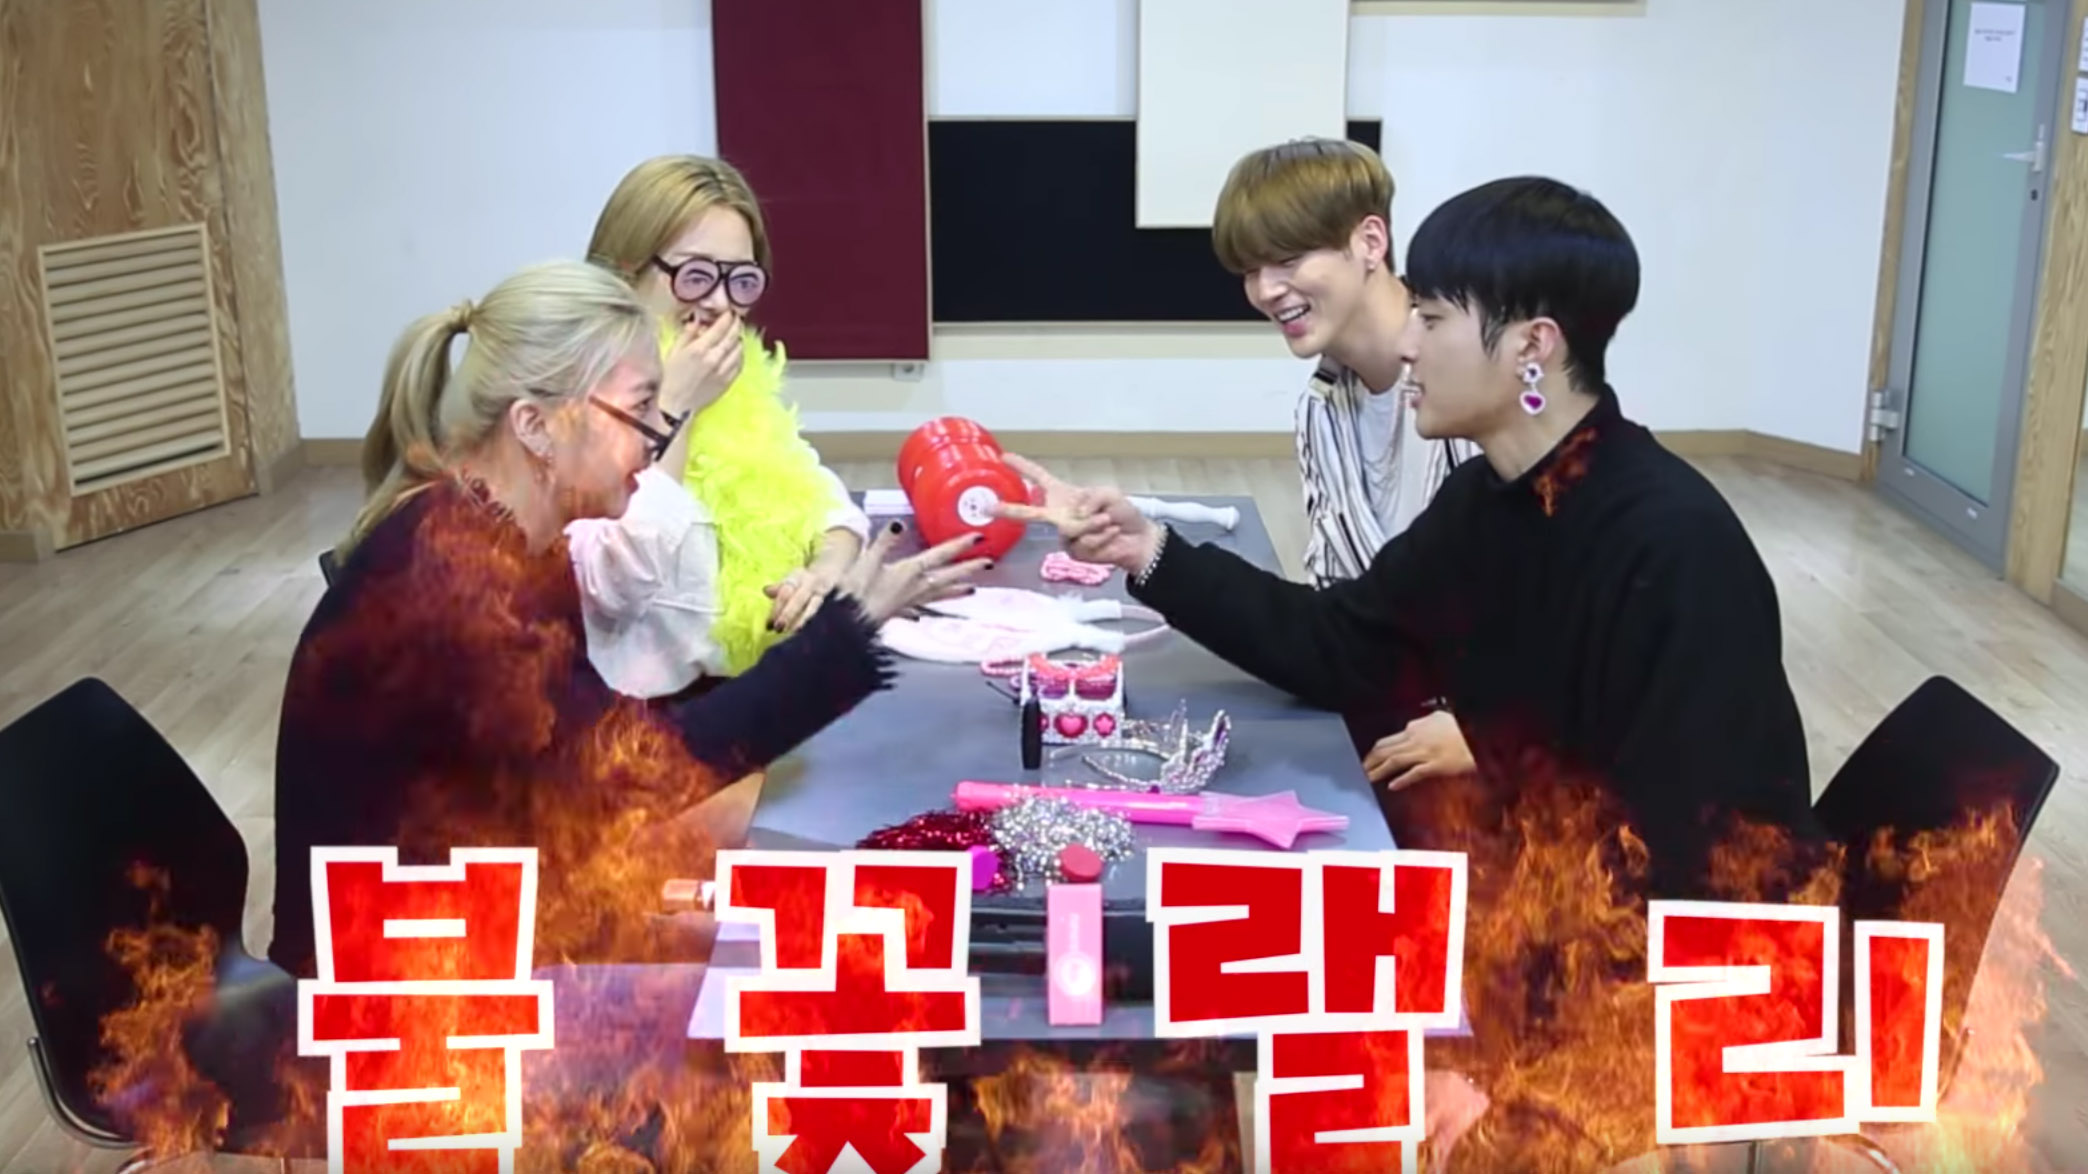 Watch: K.A.R.D Gets Competitive While Playing Silly Games